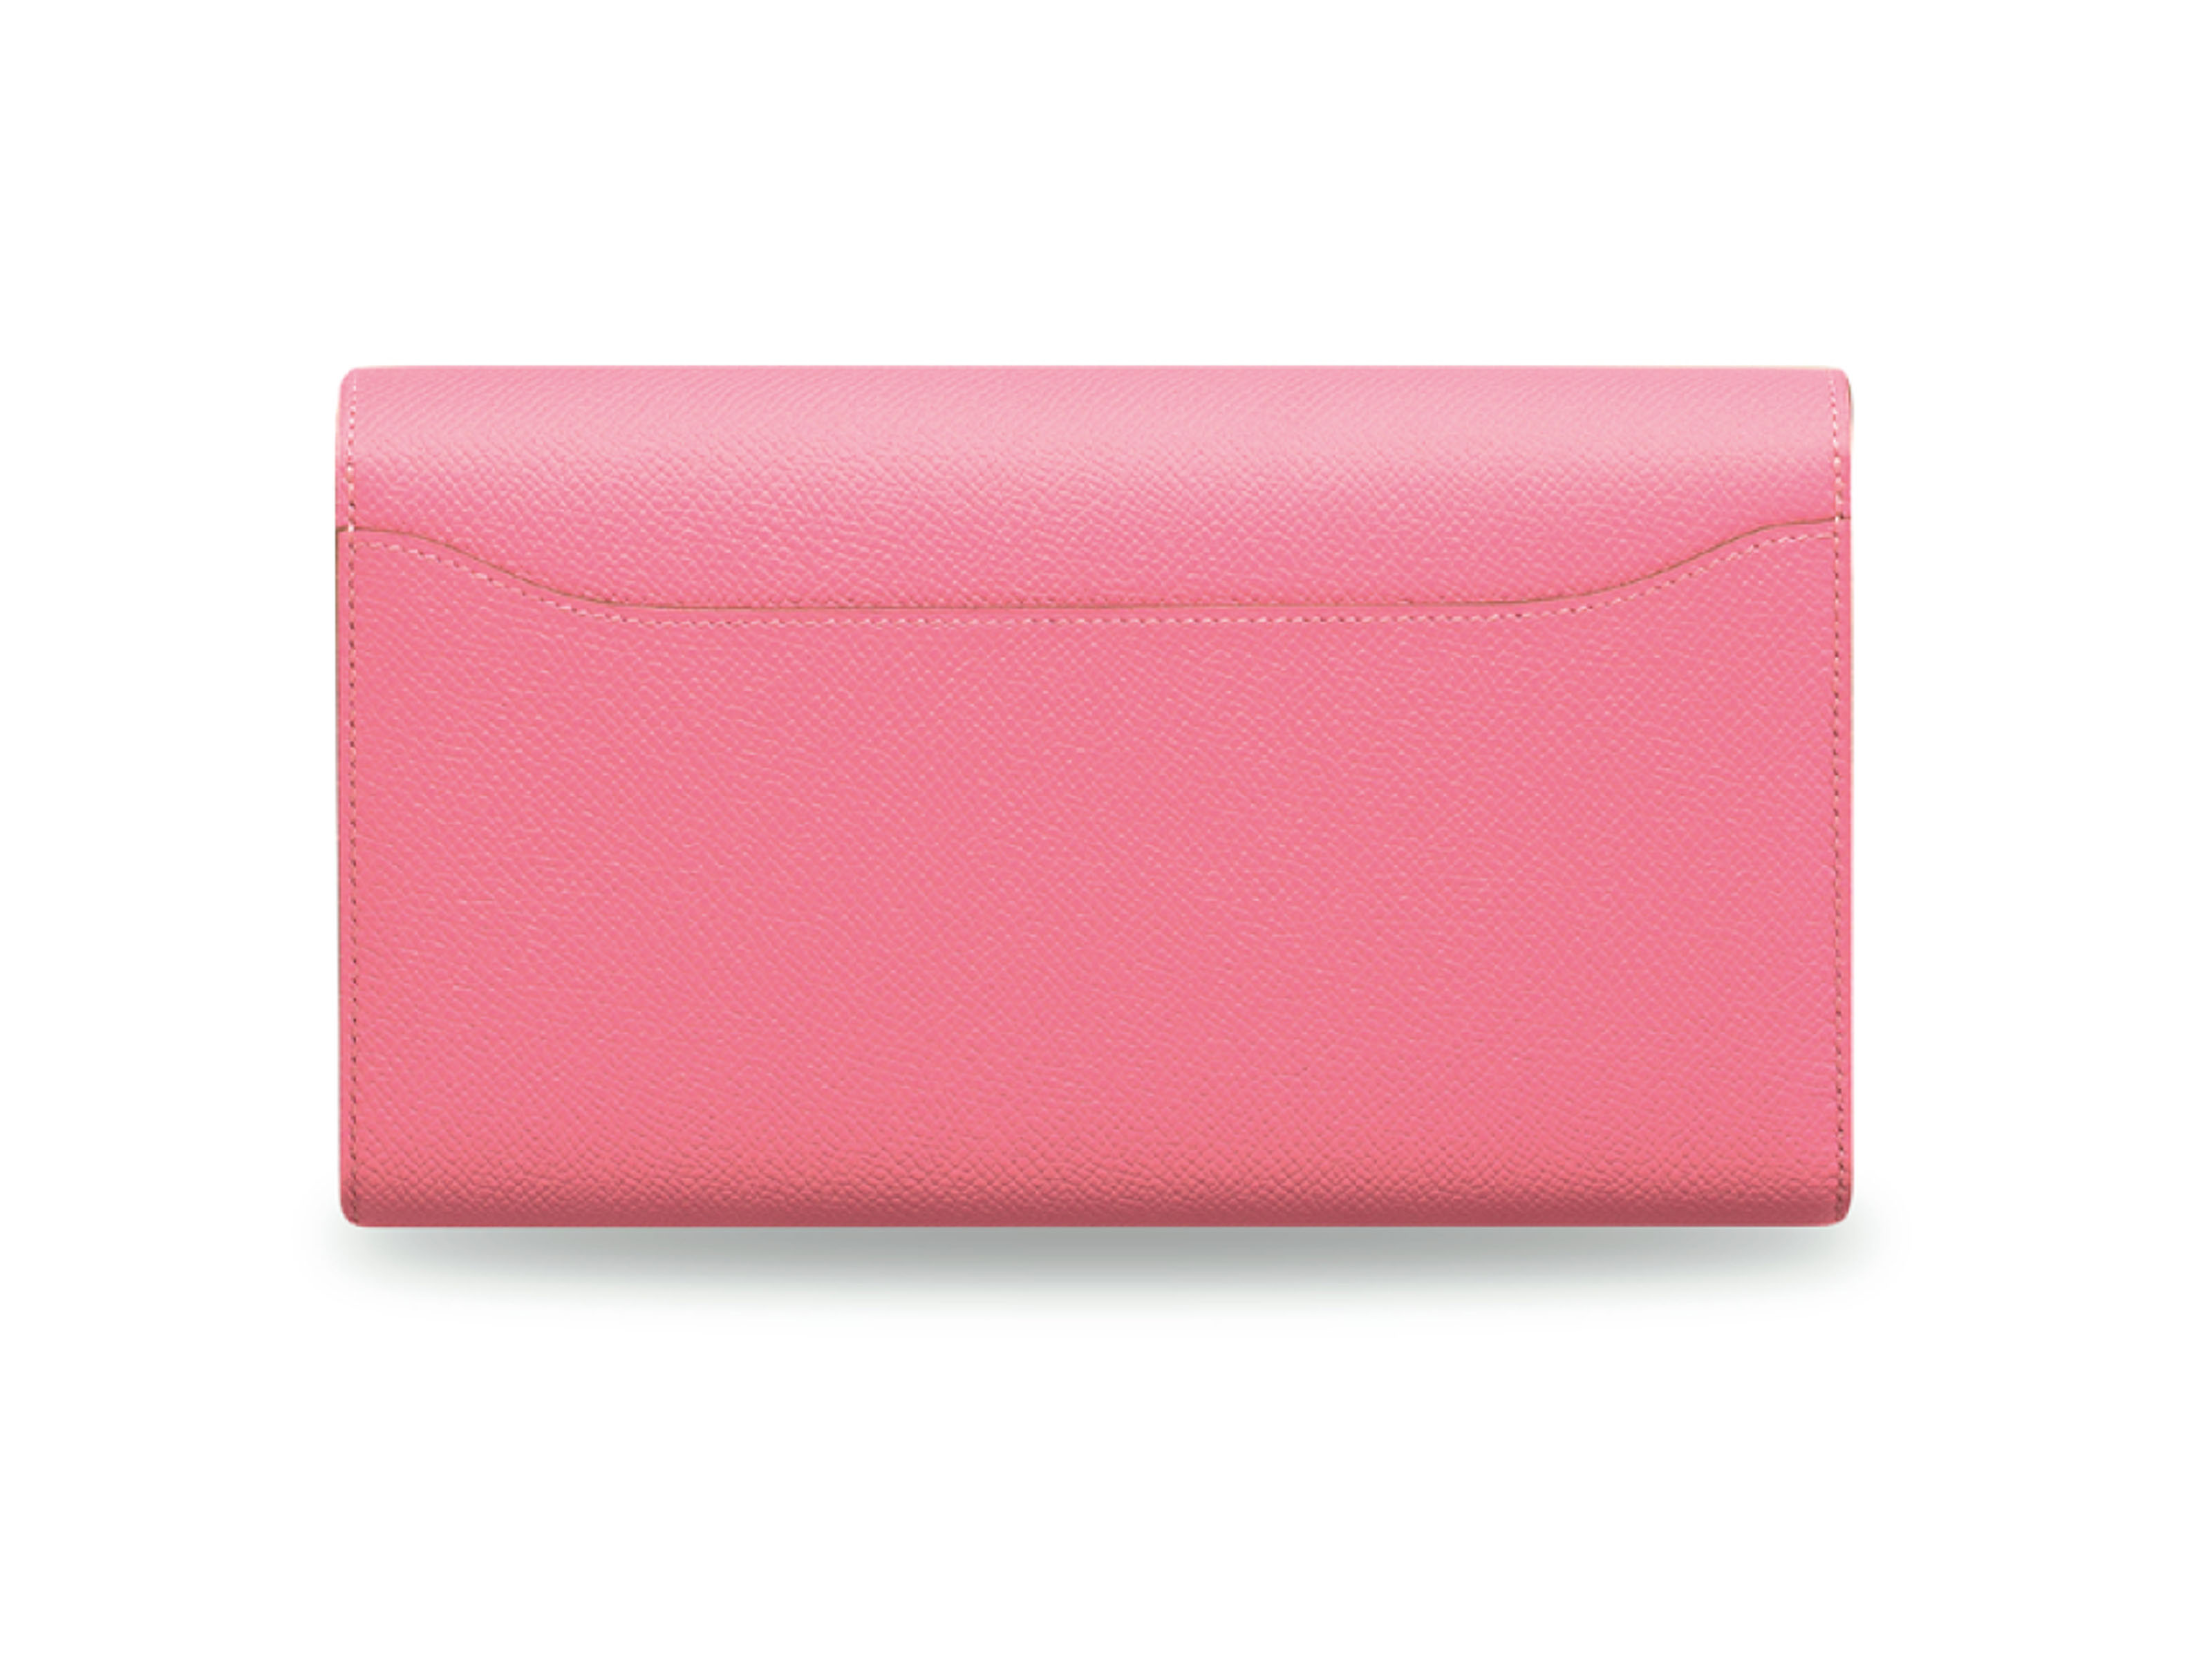 A ROSE CONFETTI EPSOM LEATHER CONSTANCE WALLET WITH PALLADIUM HARDWARE